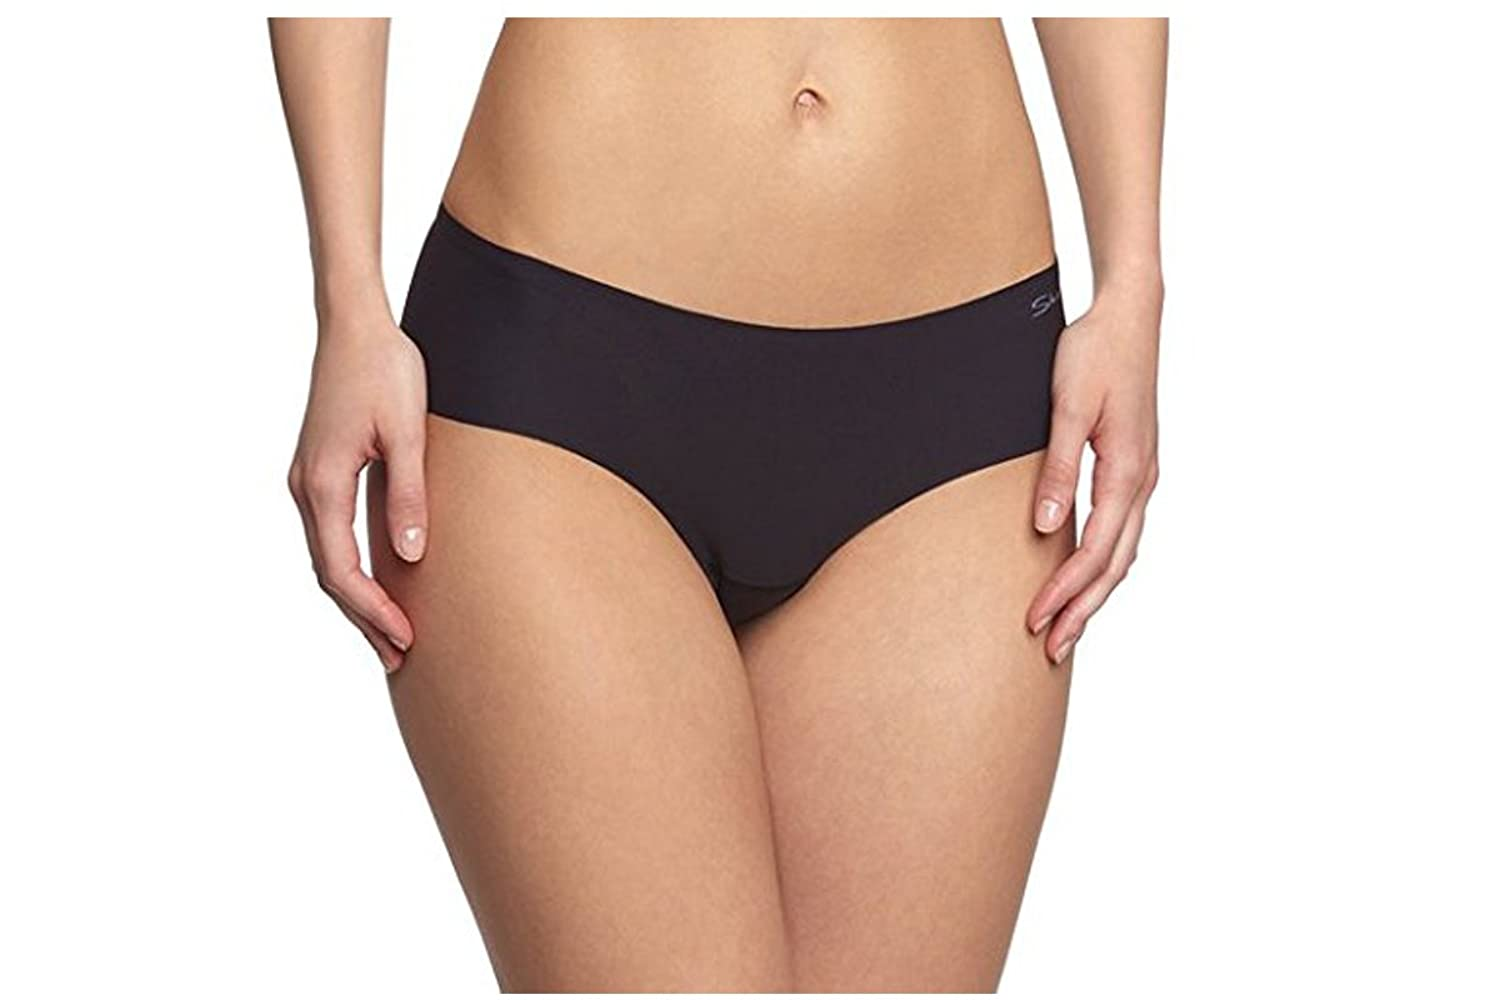 Skiny Micro Lovers Panty Brasiliano 4er Pack - 3 Farben - S bis XL (36-42)